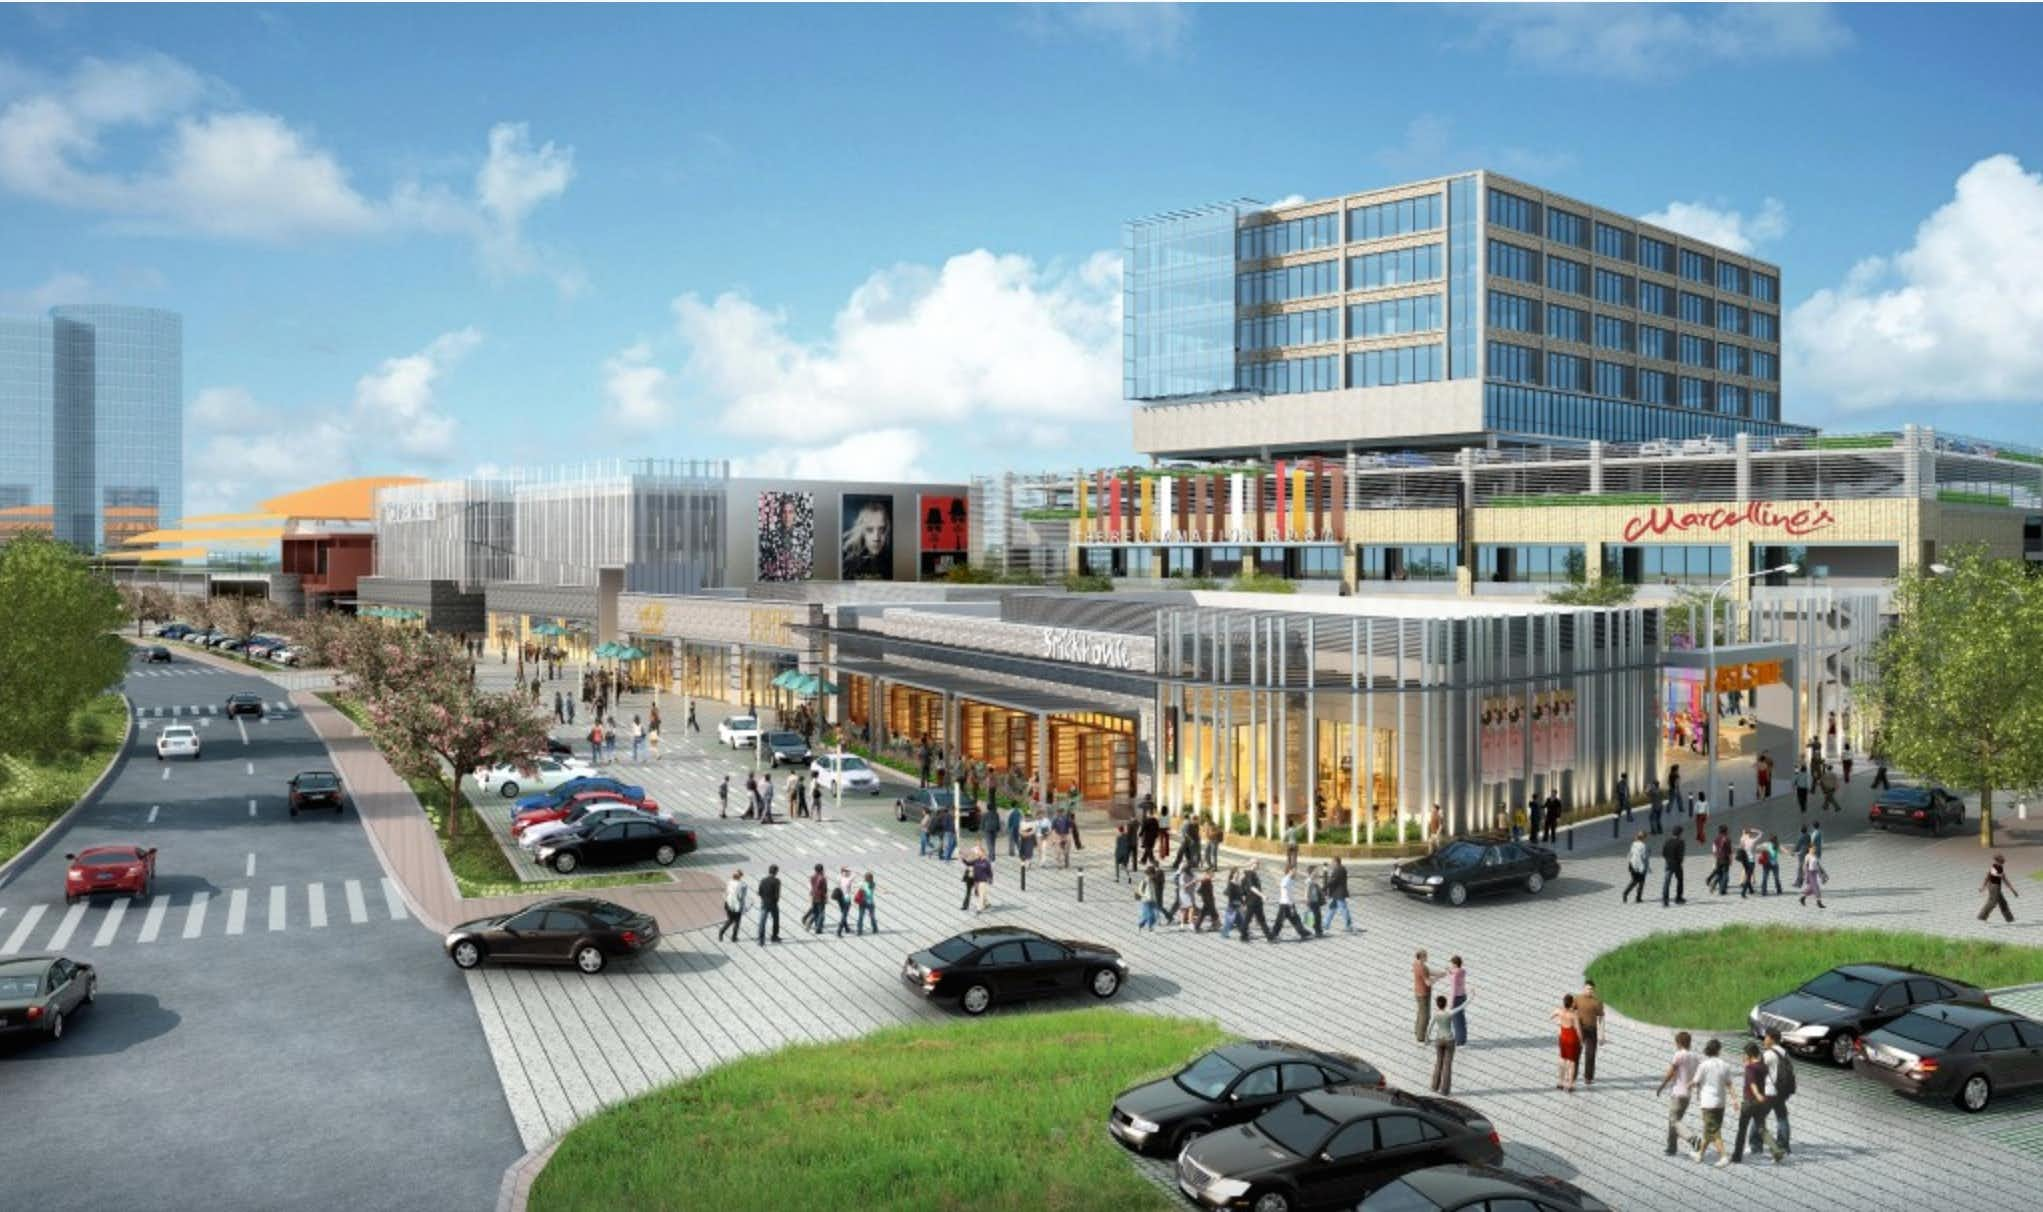 The Music Factory will include office, retail, restaurants and entertainment venues.ARK Group